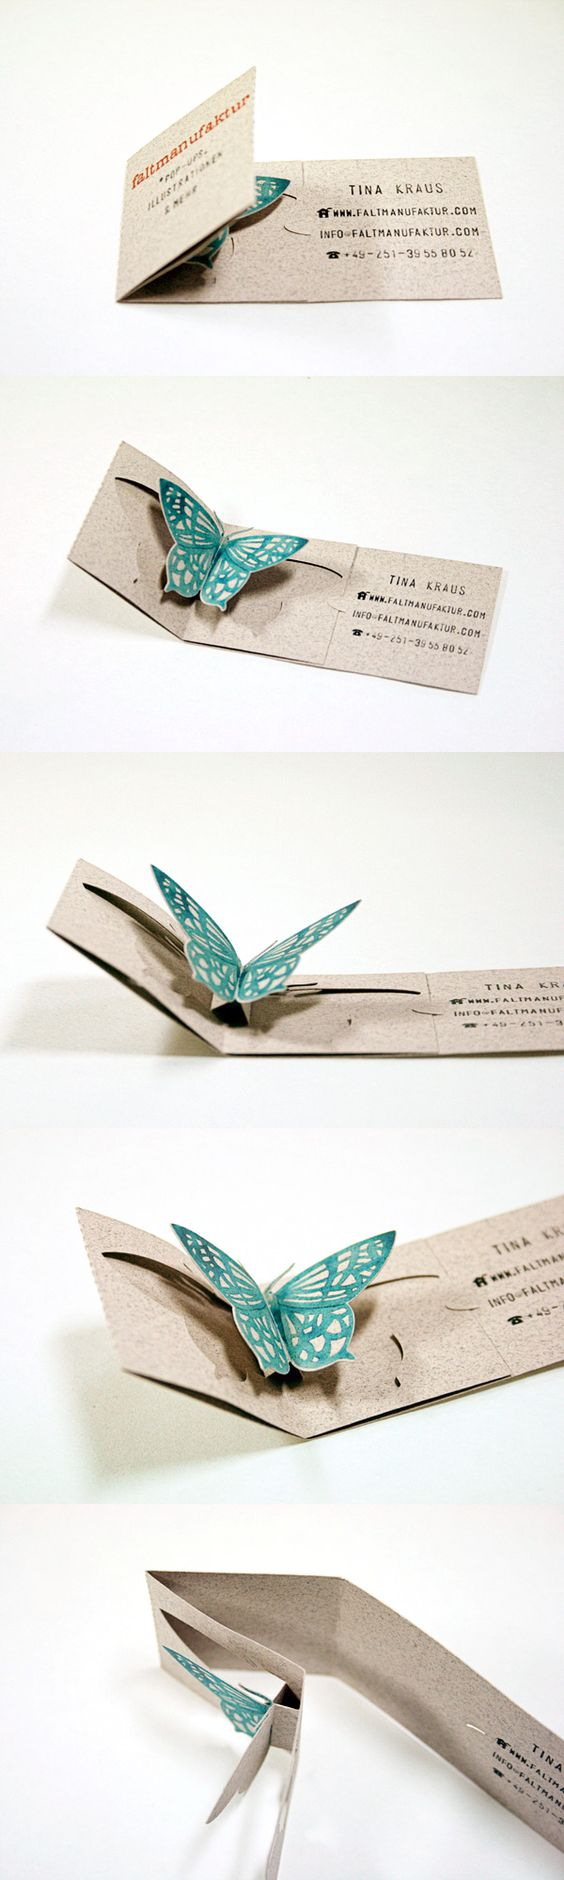 10 Ideas Creativas y Divertidas de Invitaciones